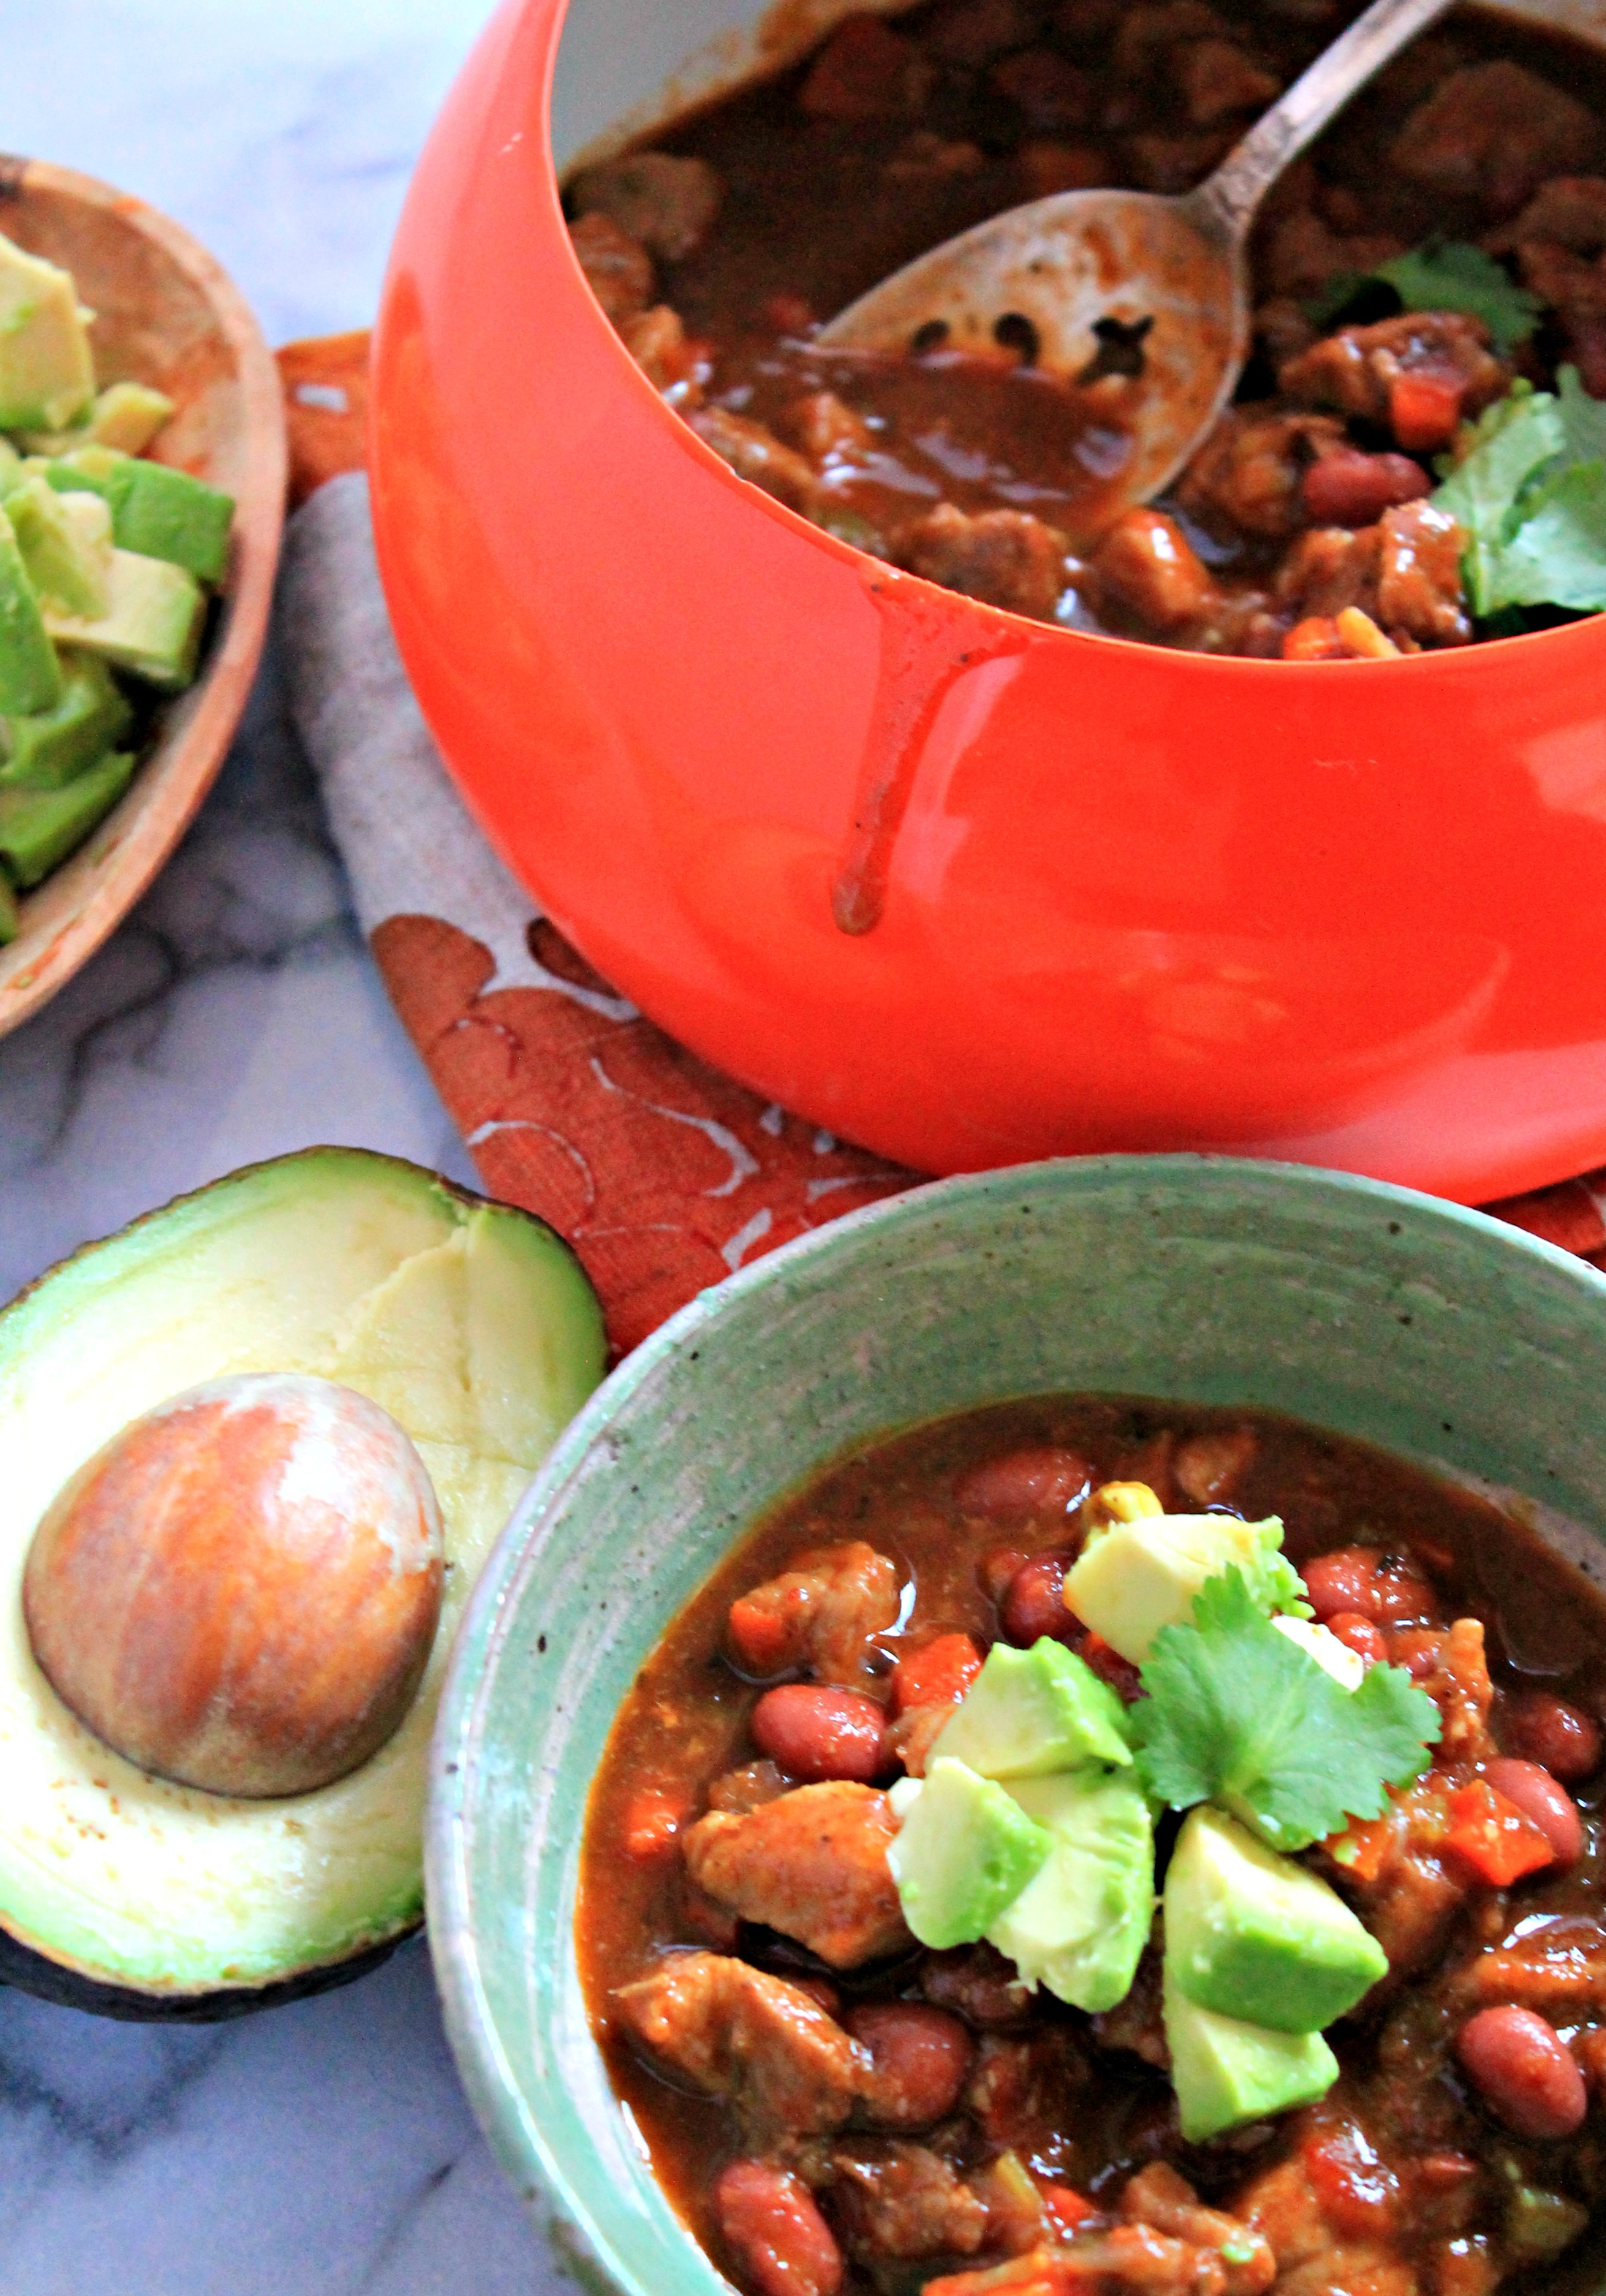 ... chili spicy vegetarian chili three bean chili red bean chili easy